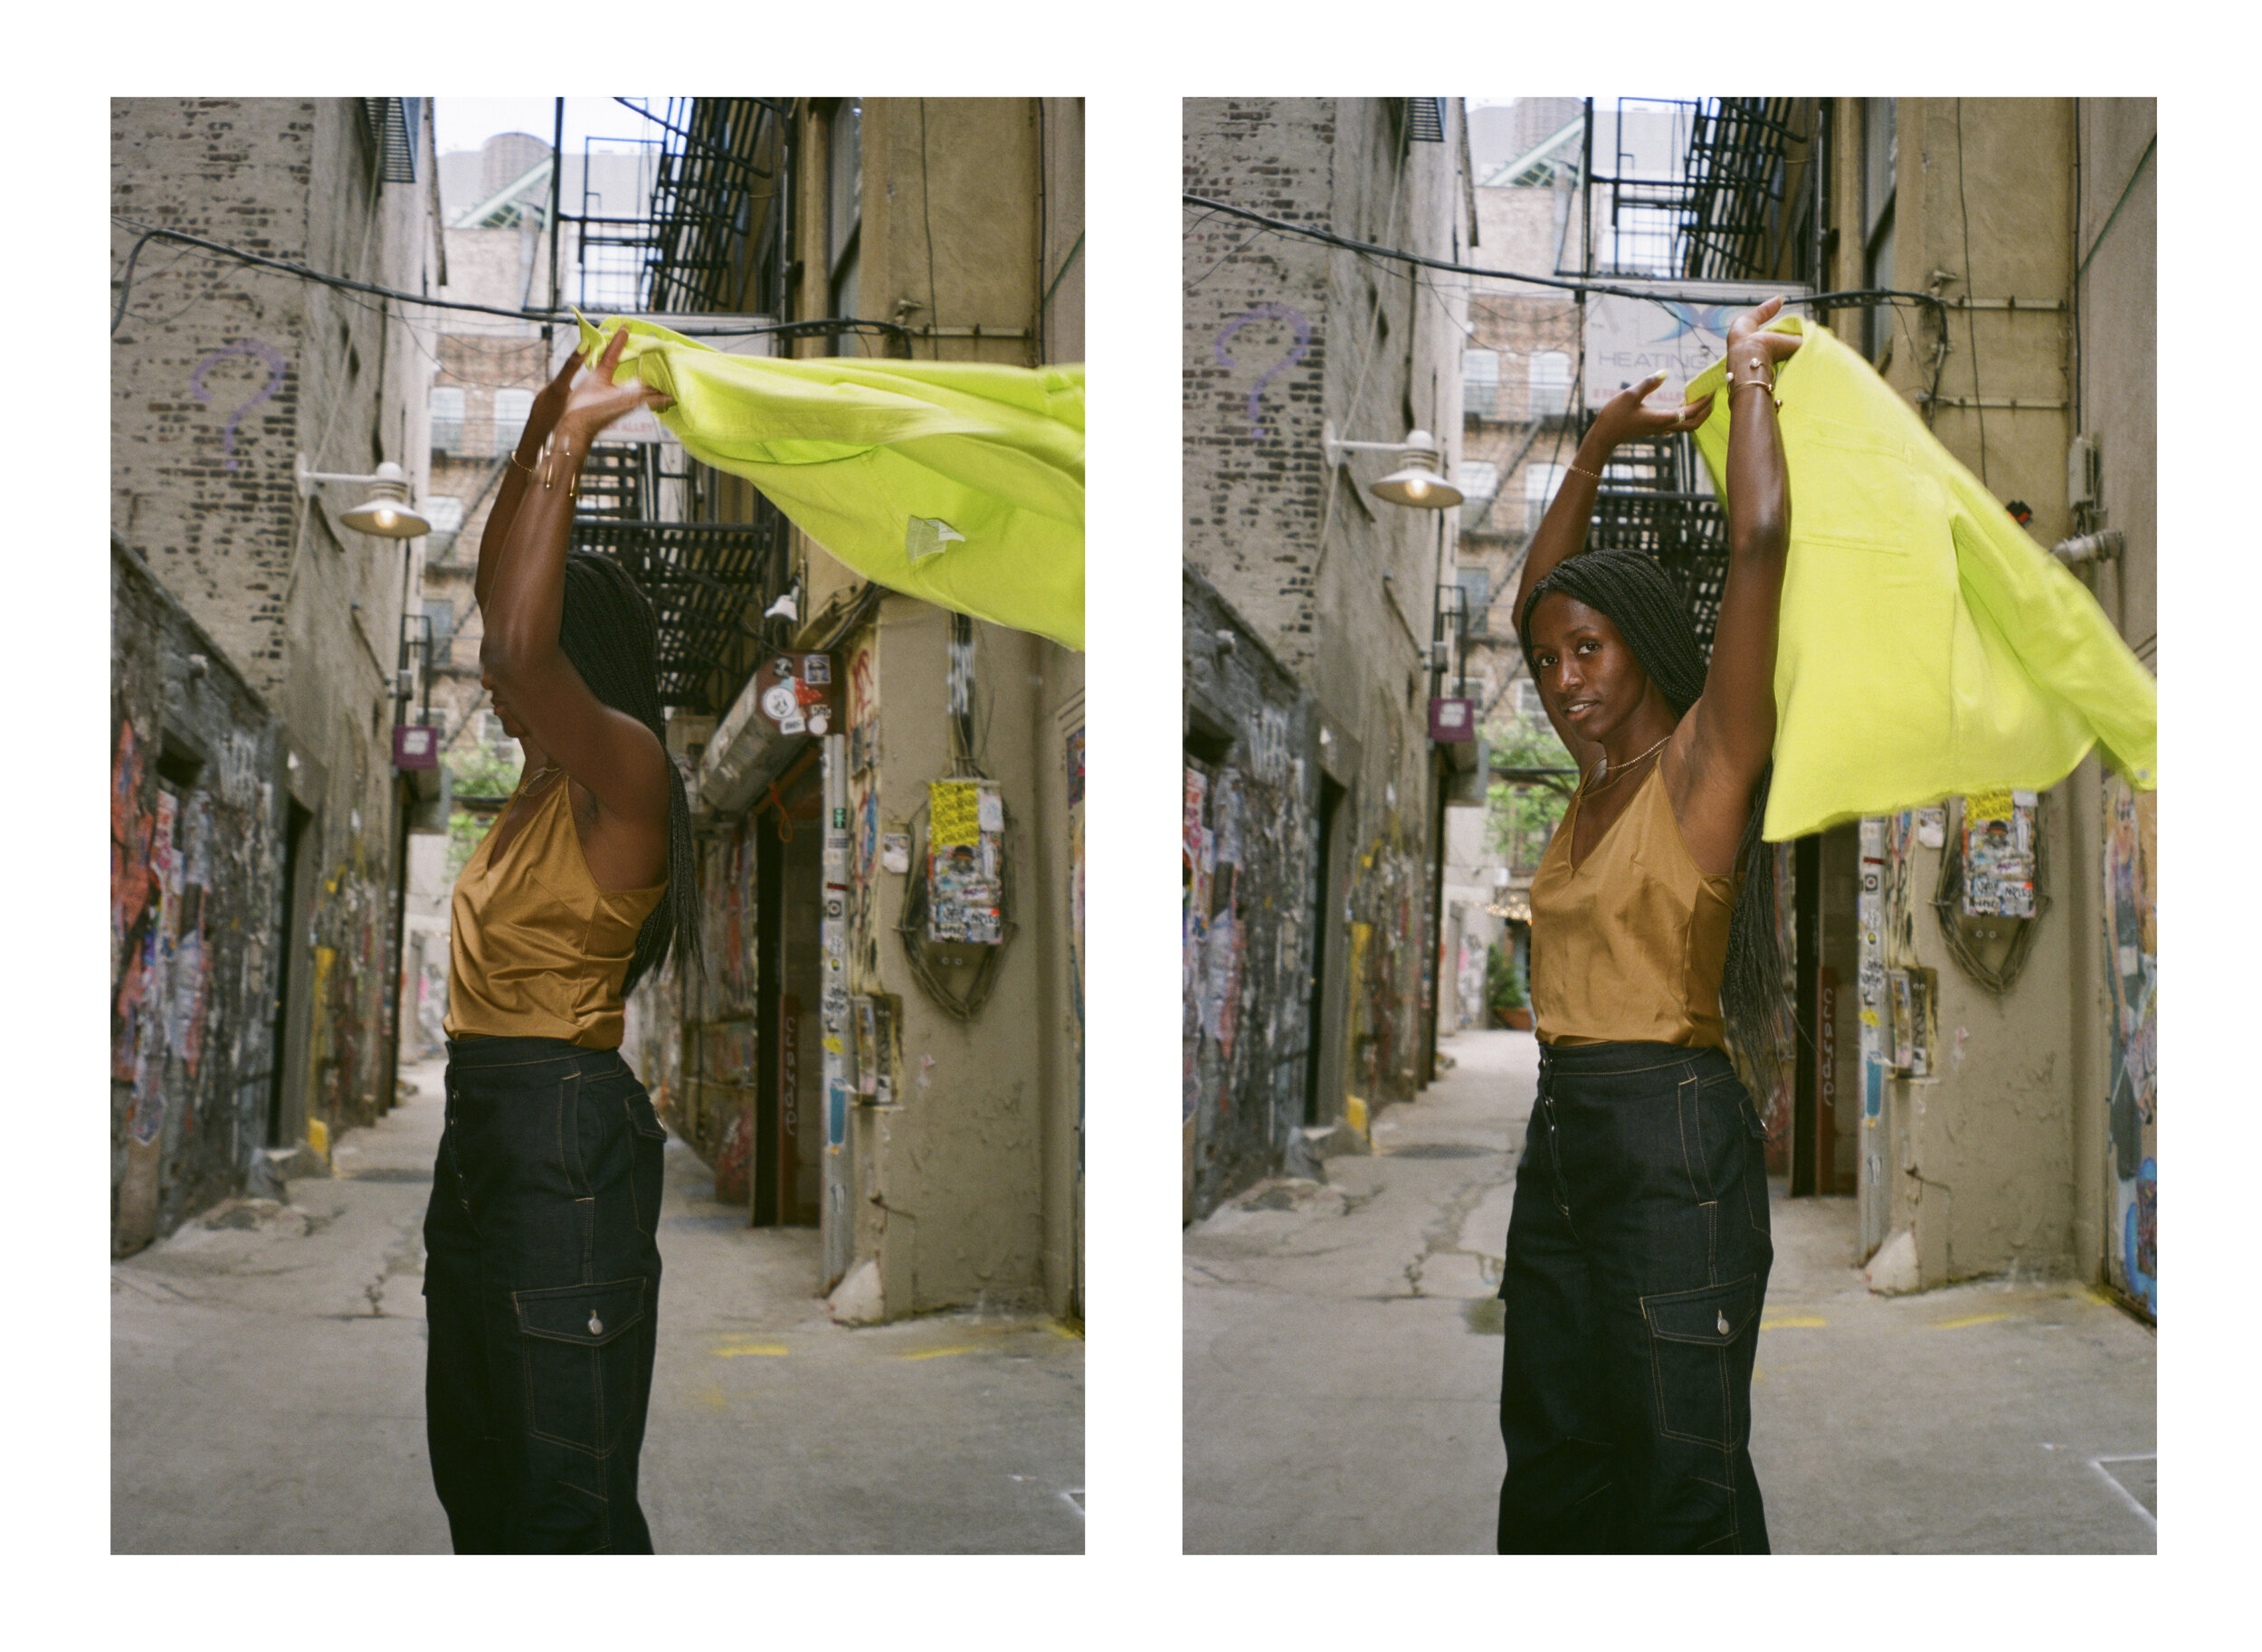 Flo Ngala by Nuvany David, styled by Yana Persaud